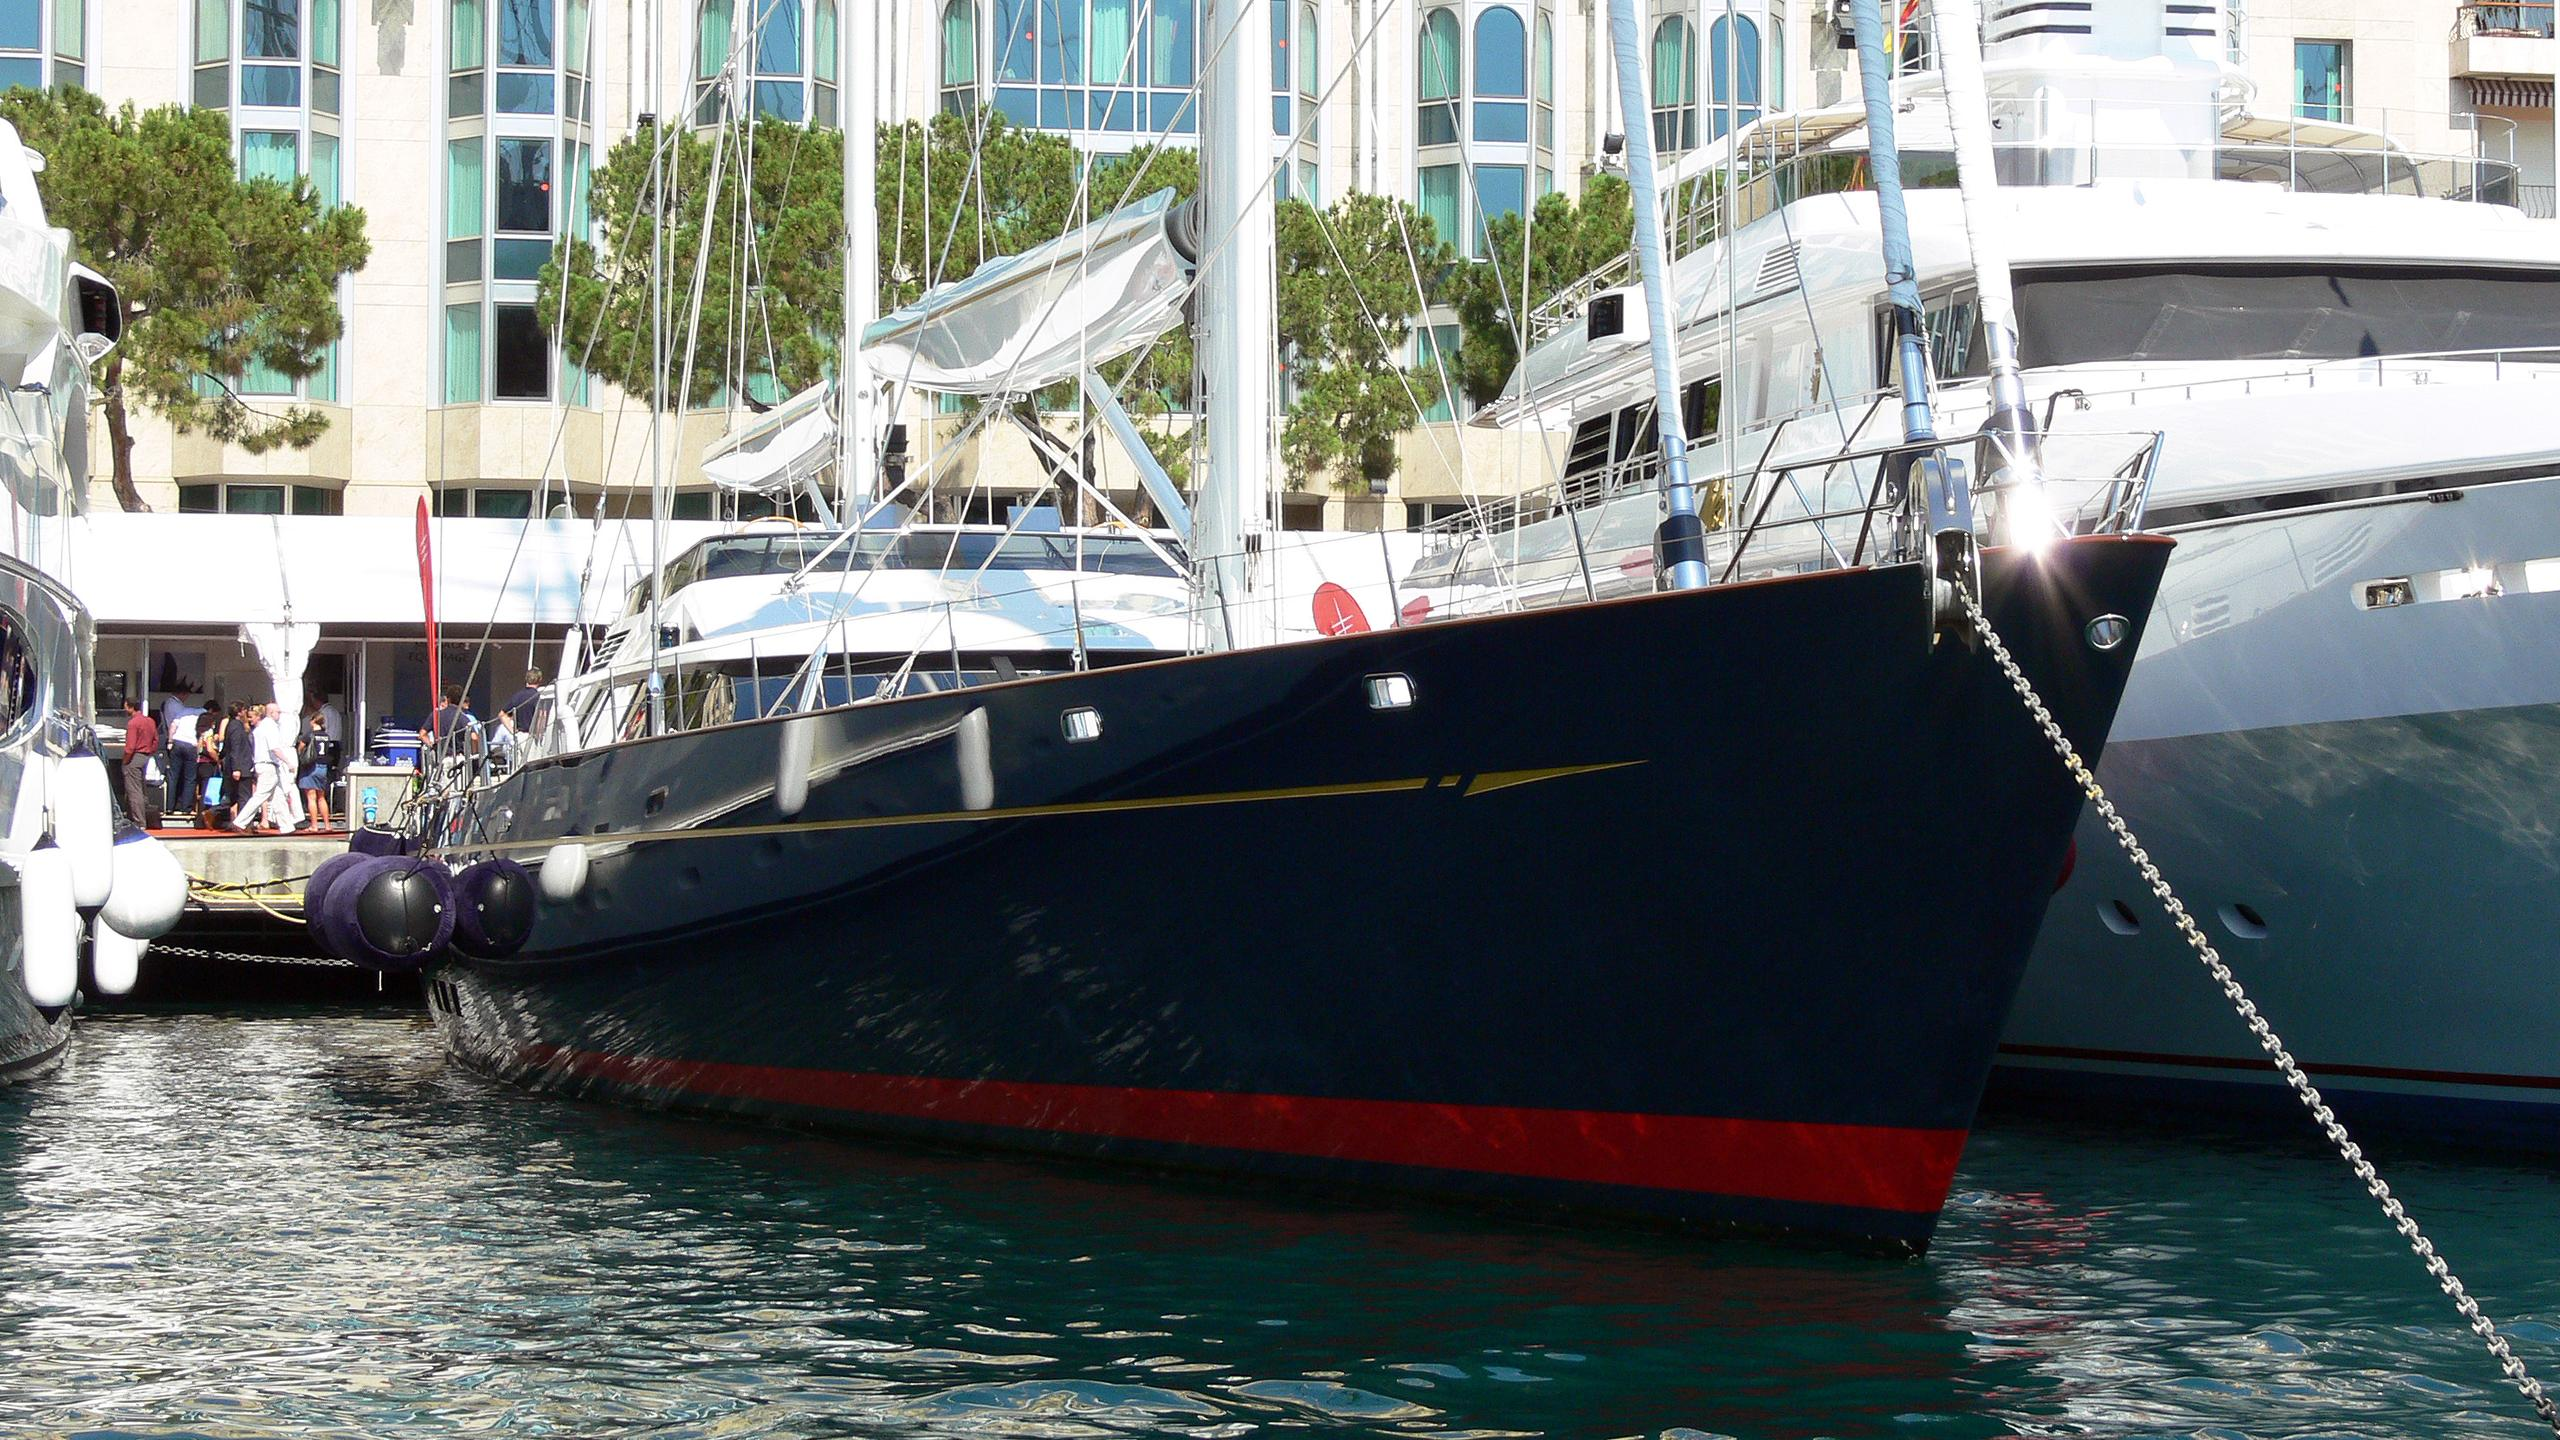 drumbeat-sailing-yacht-alloy-2002-53m-bow